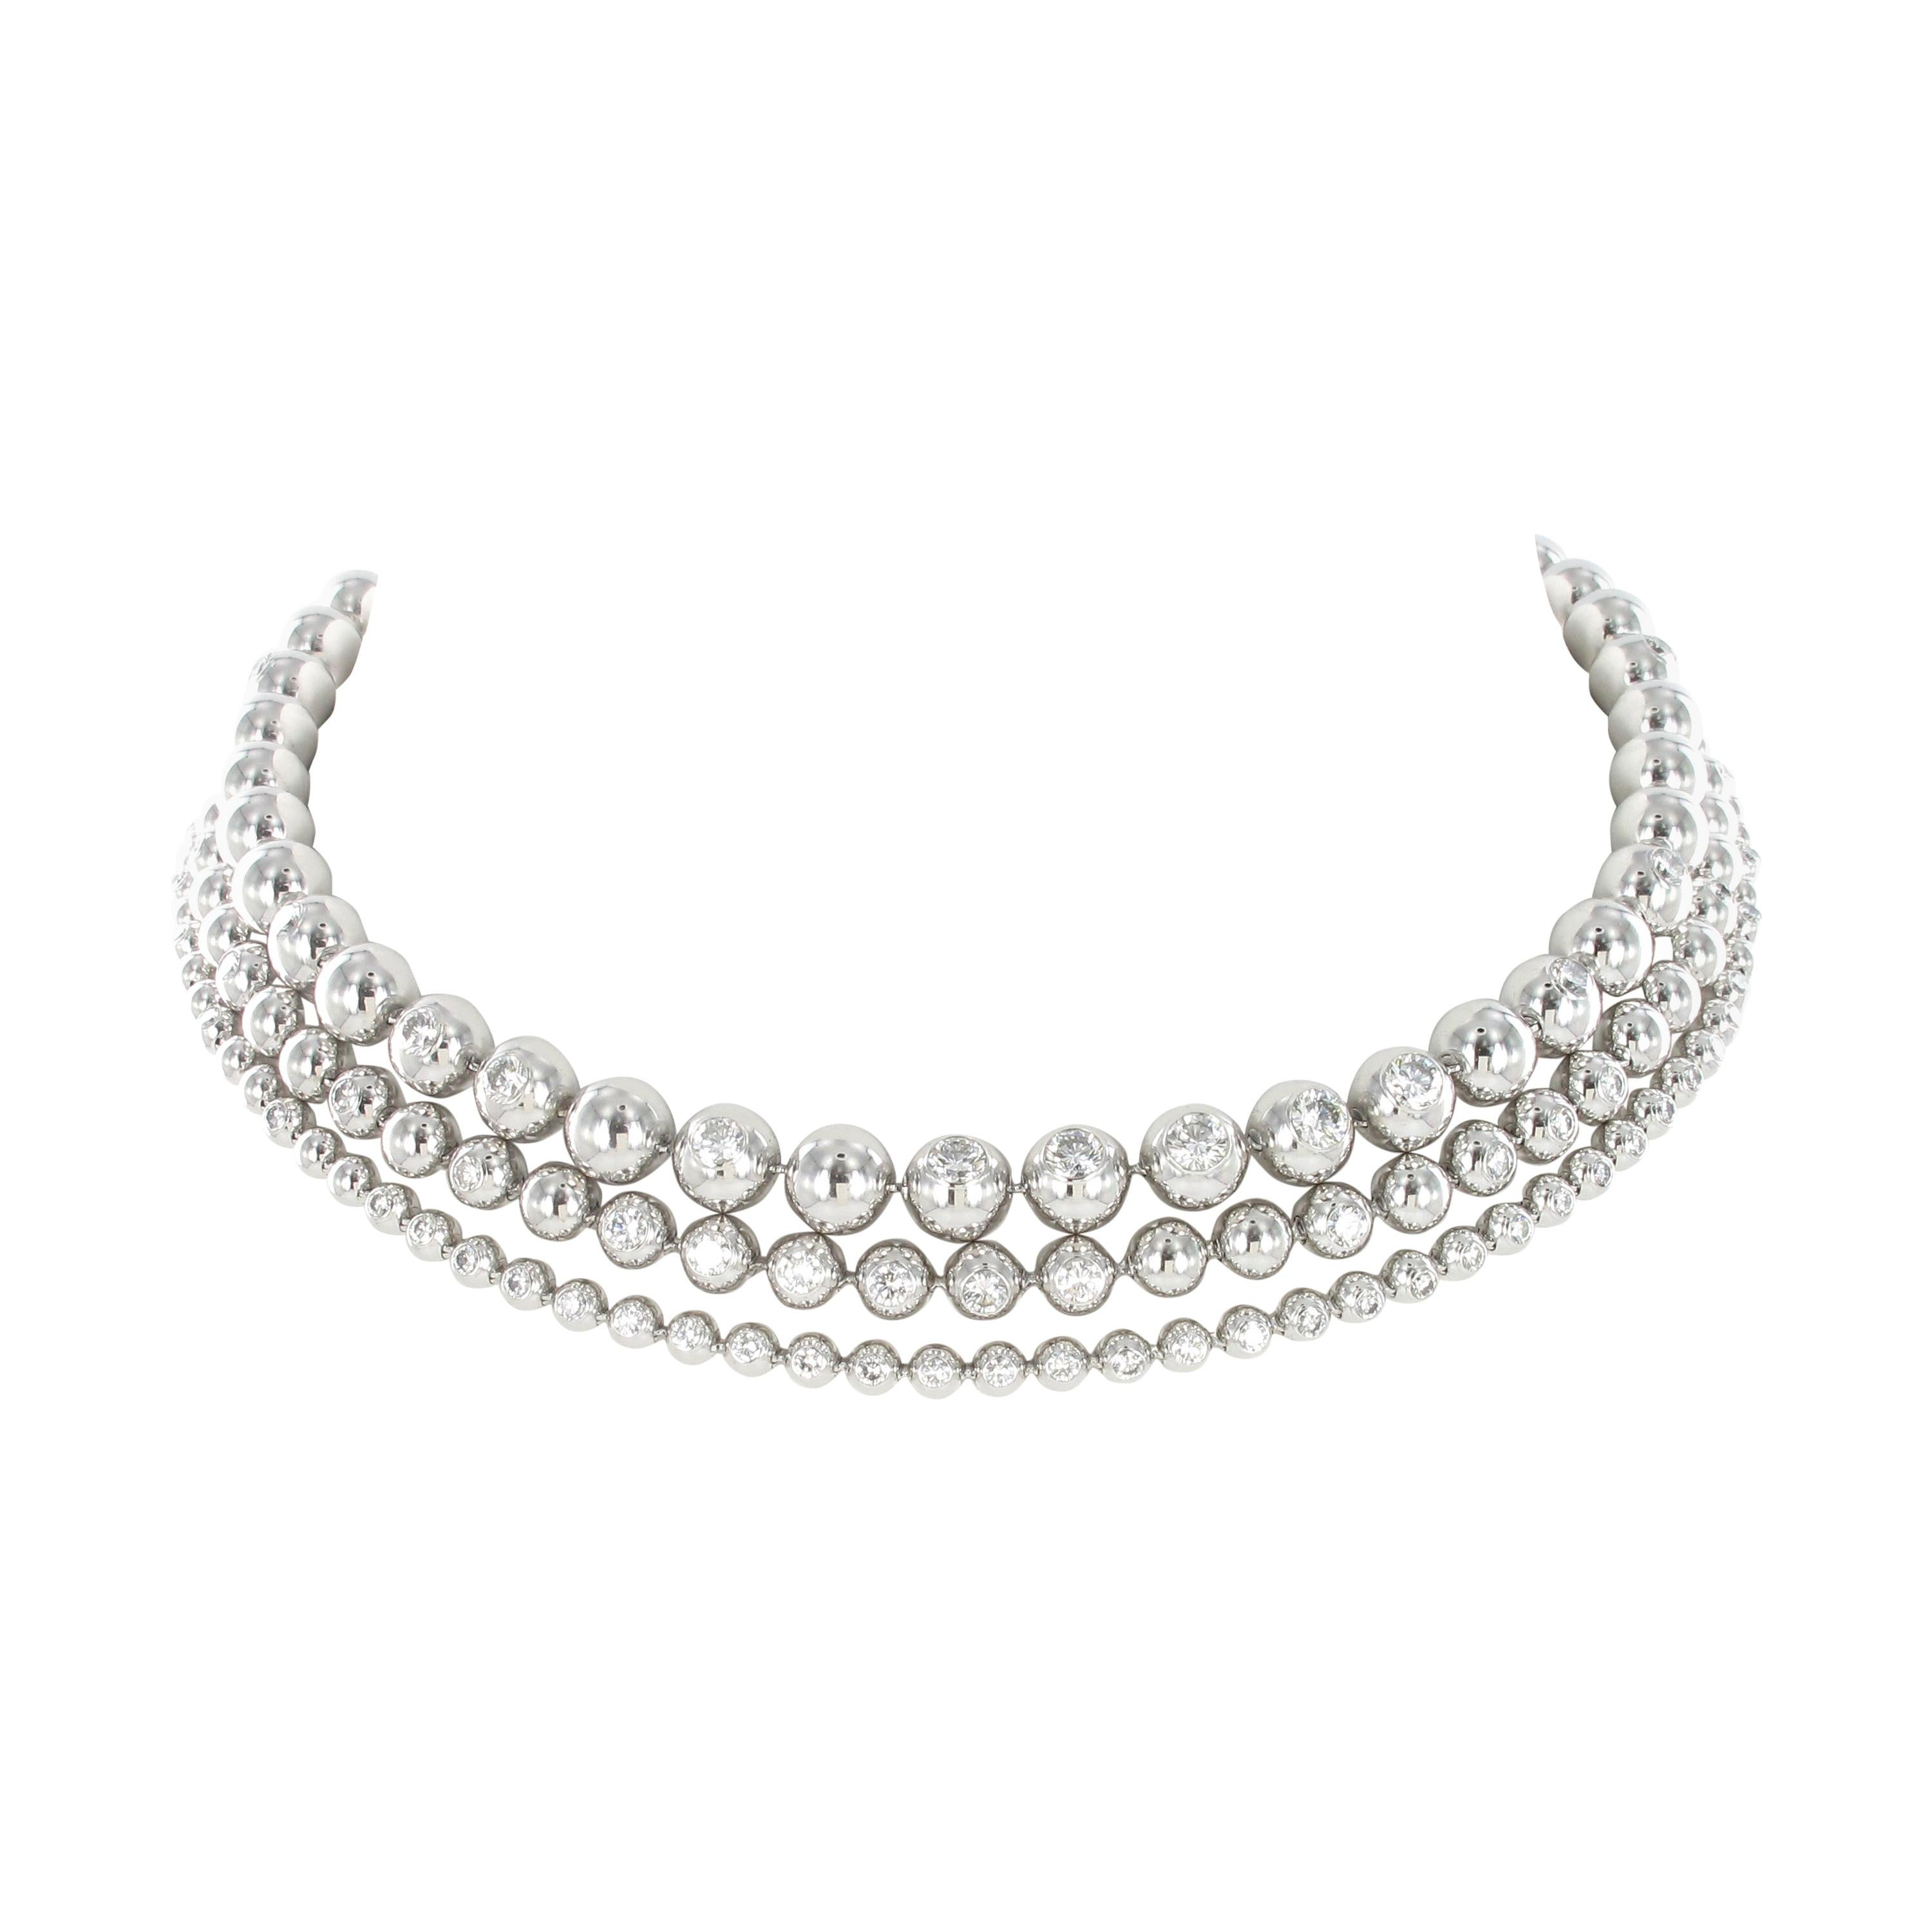 Cartier Diamond White Gold Perles De Diamants Necklace